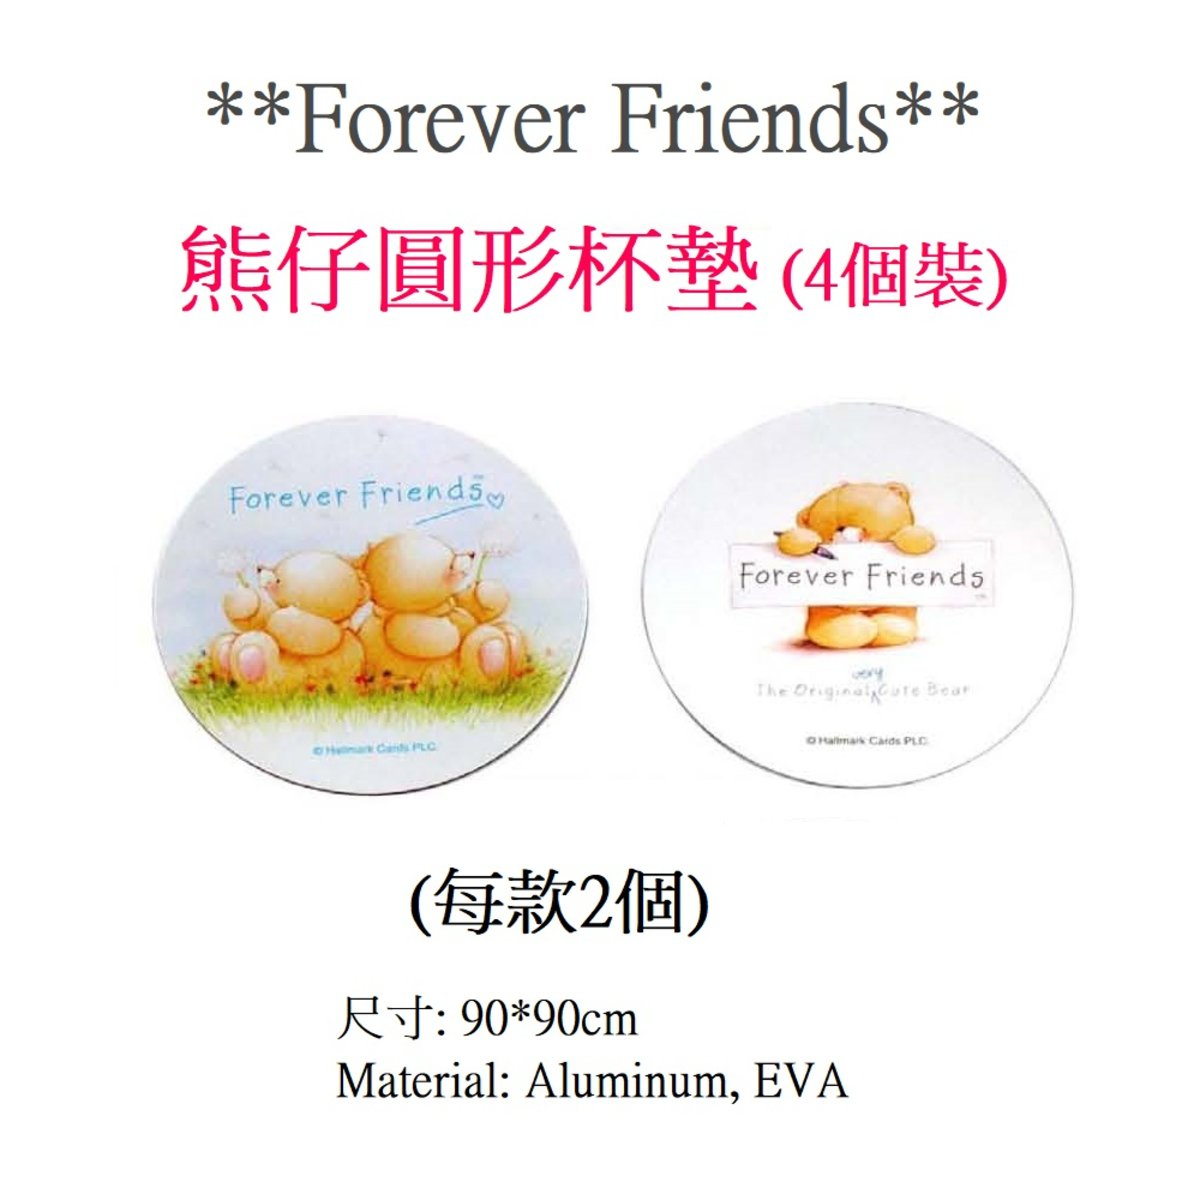 EL0111-Forever Friends Coaster (Parallel Imports)